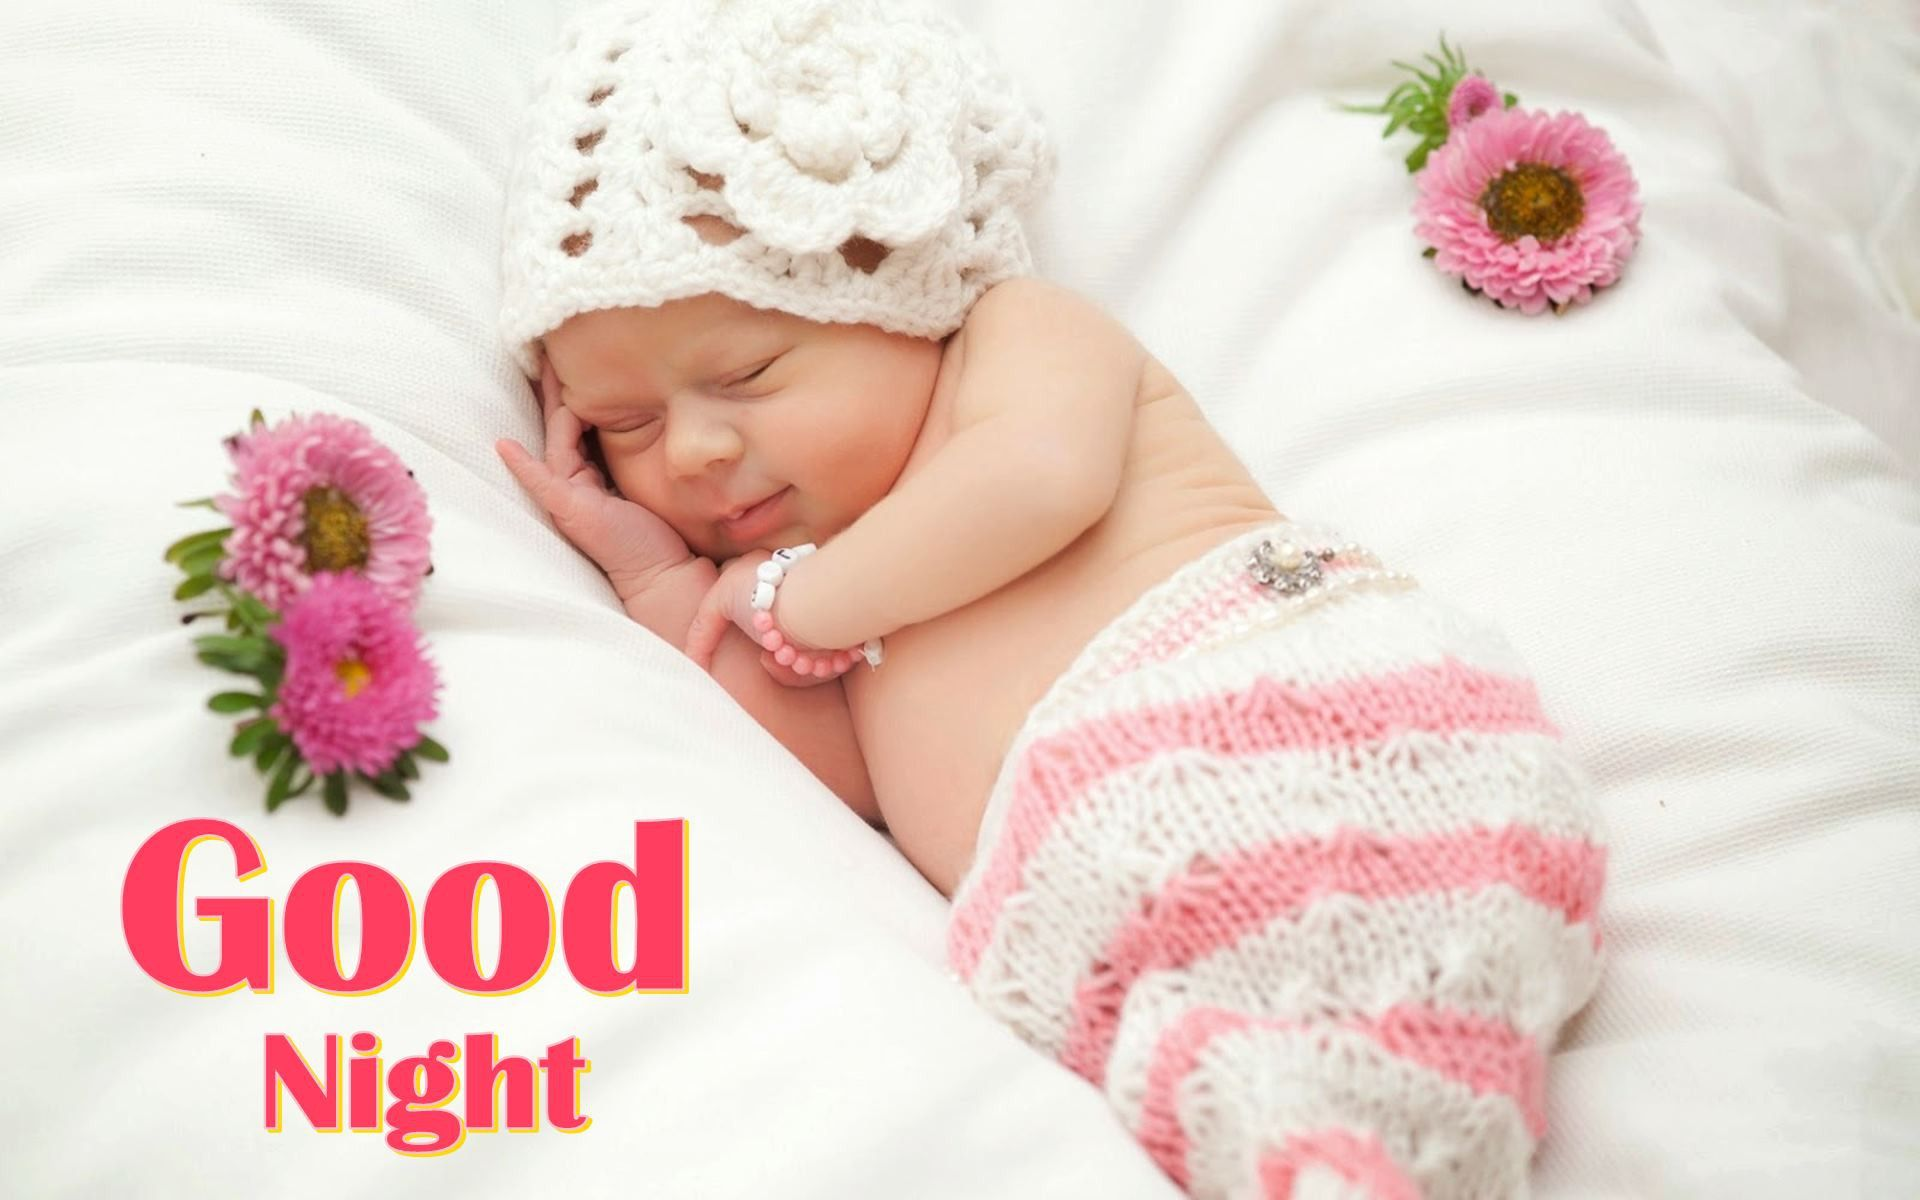 Good night images baby hd